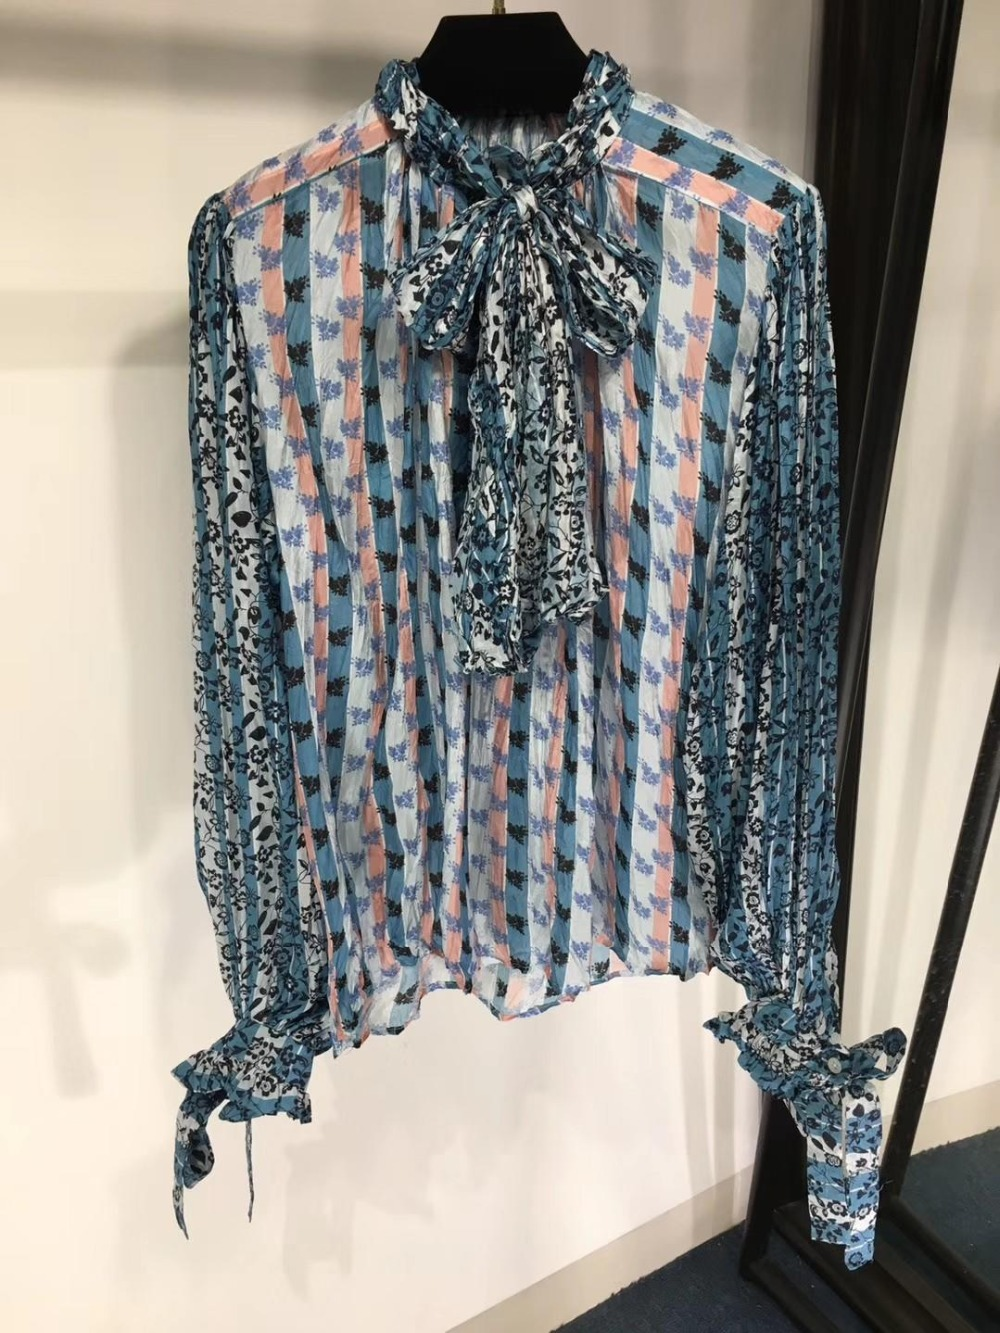 2019 new ladies fashion striped stitching one shoulder blouse 0326